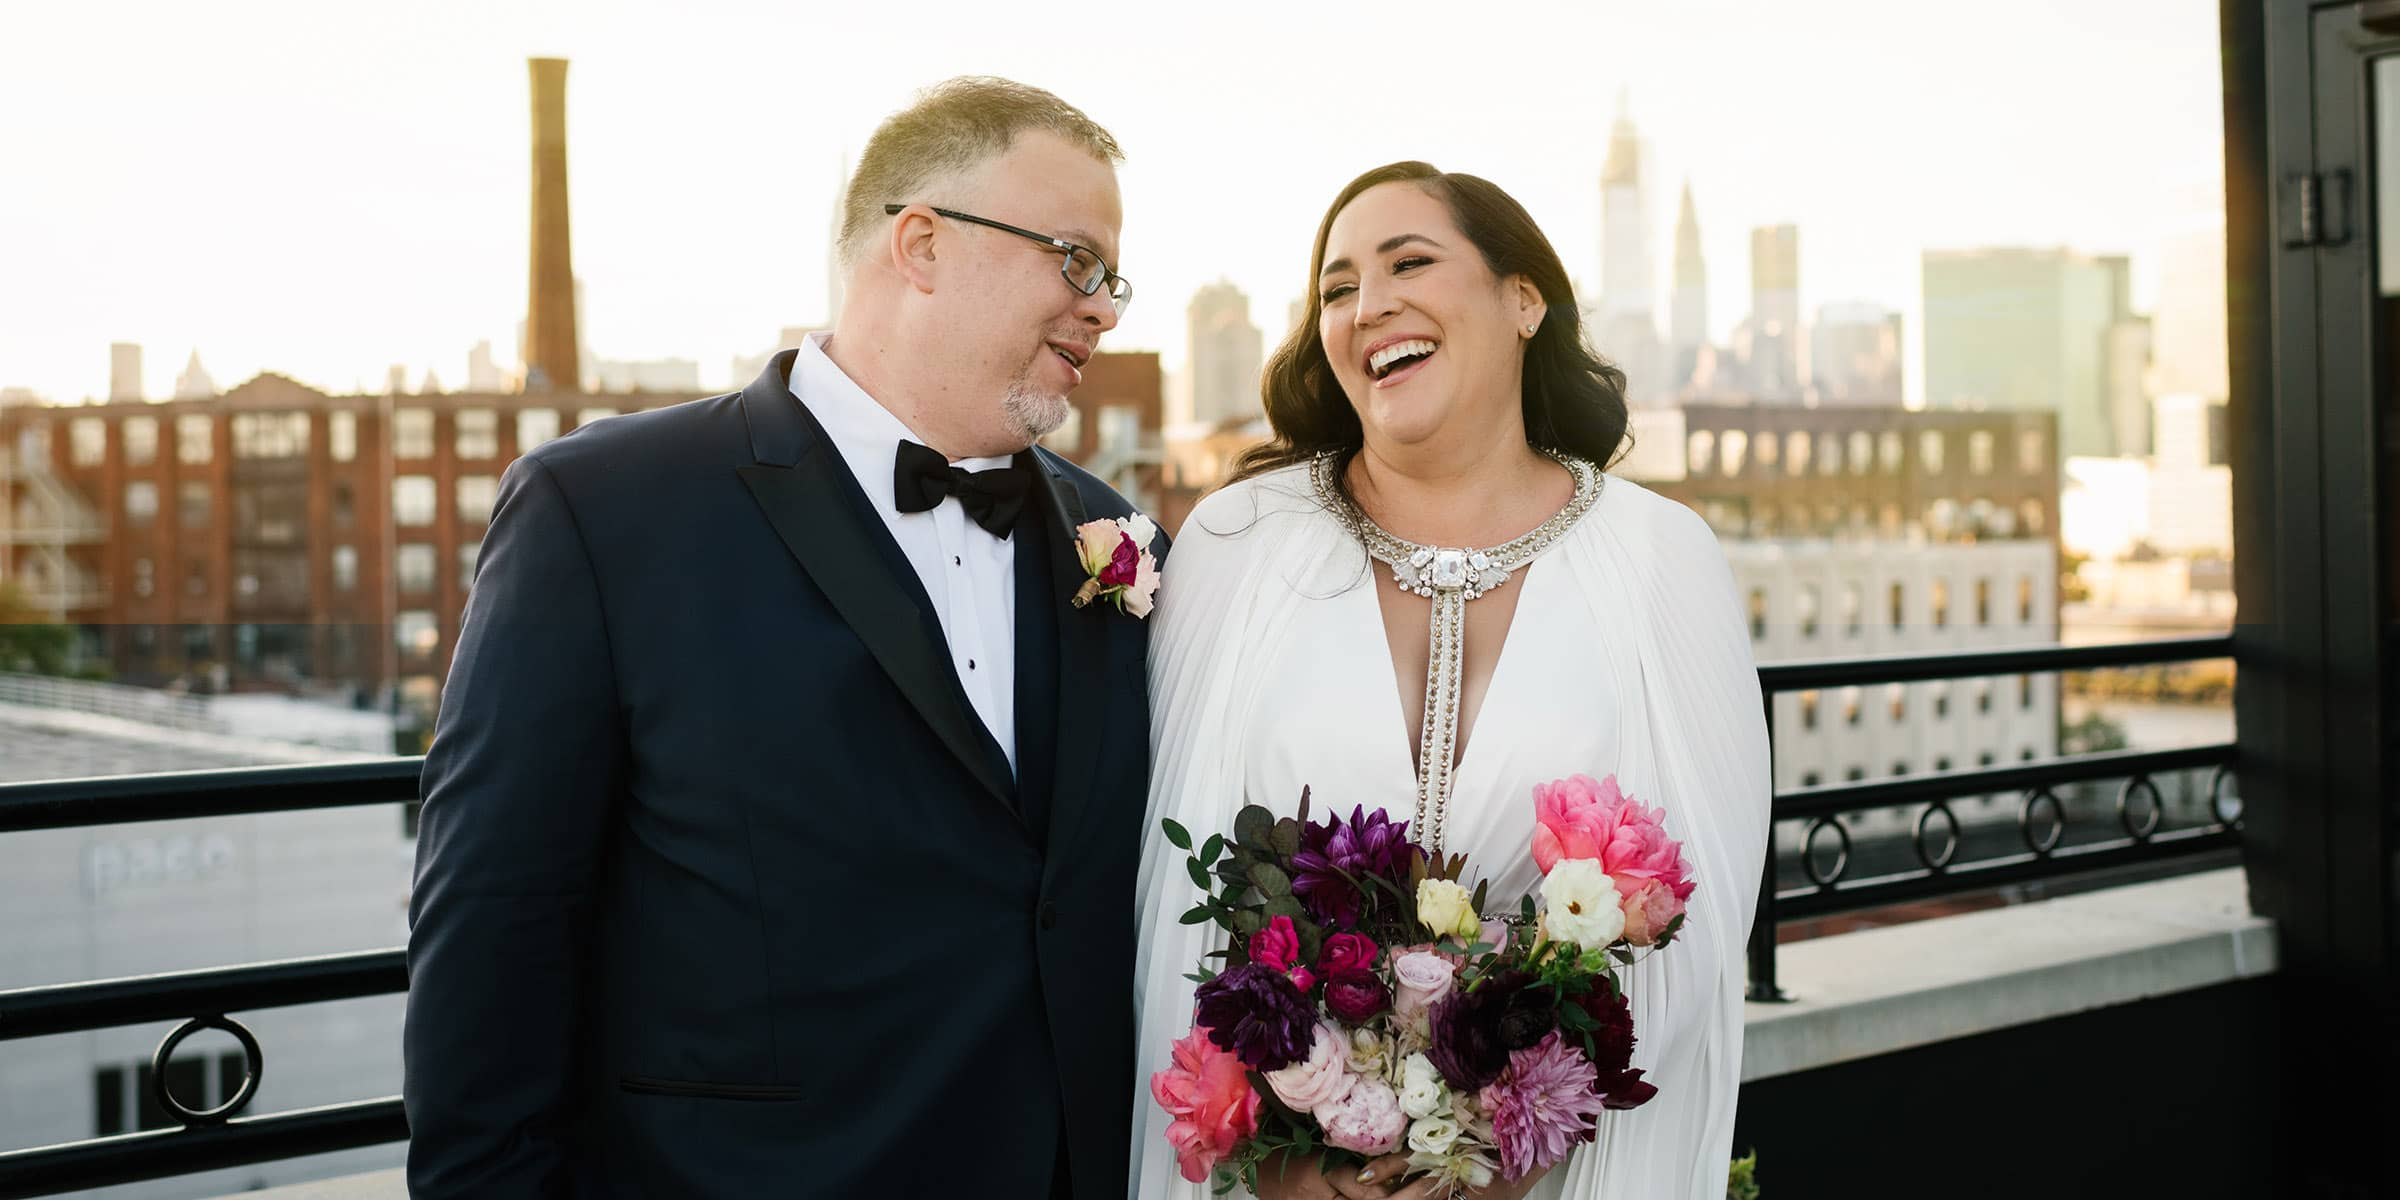 Wedding photography in New York - NYC rooftop wedding at sunset